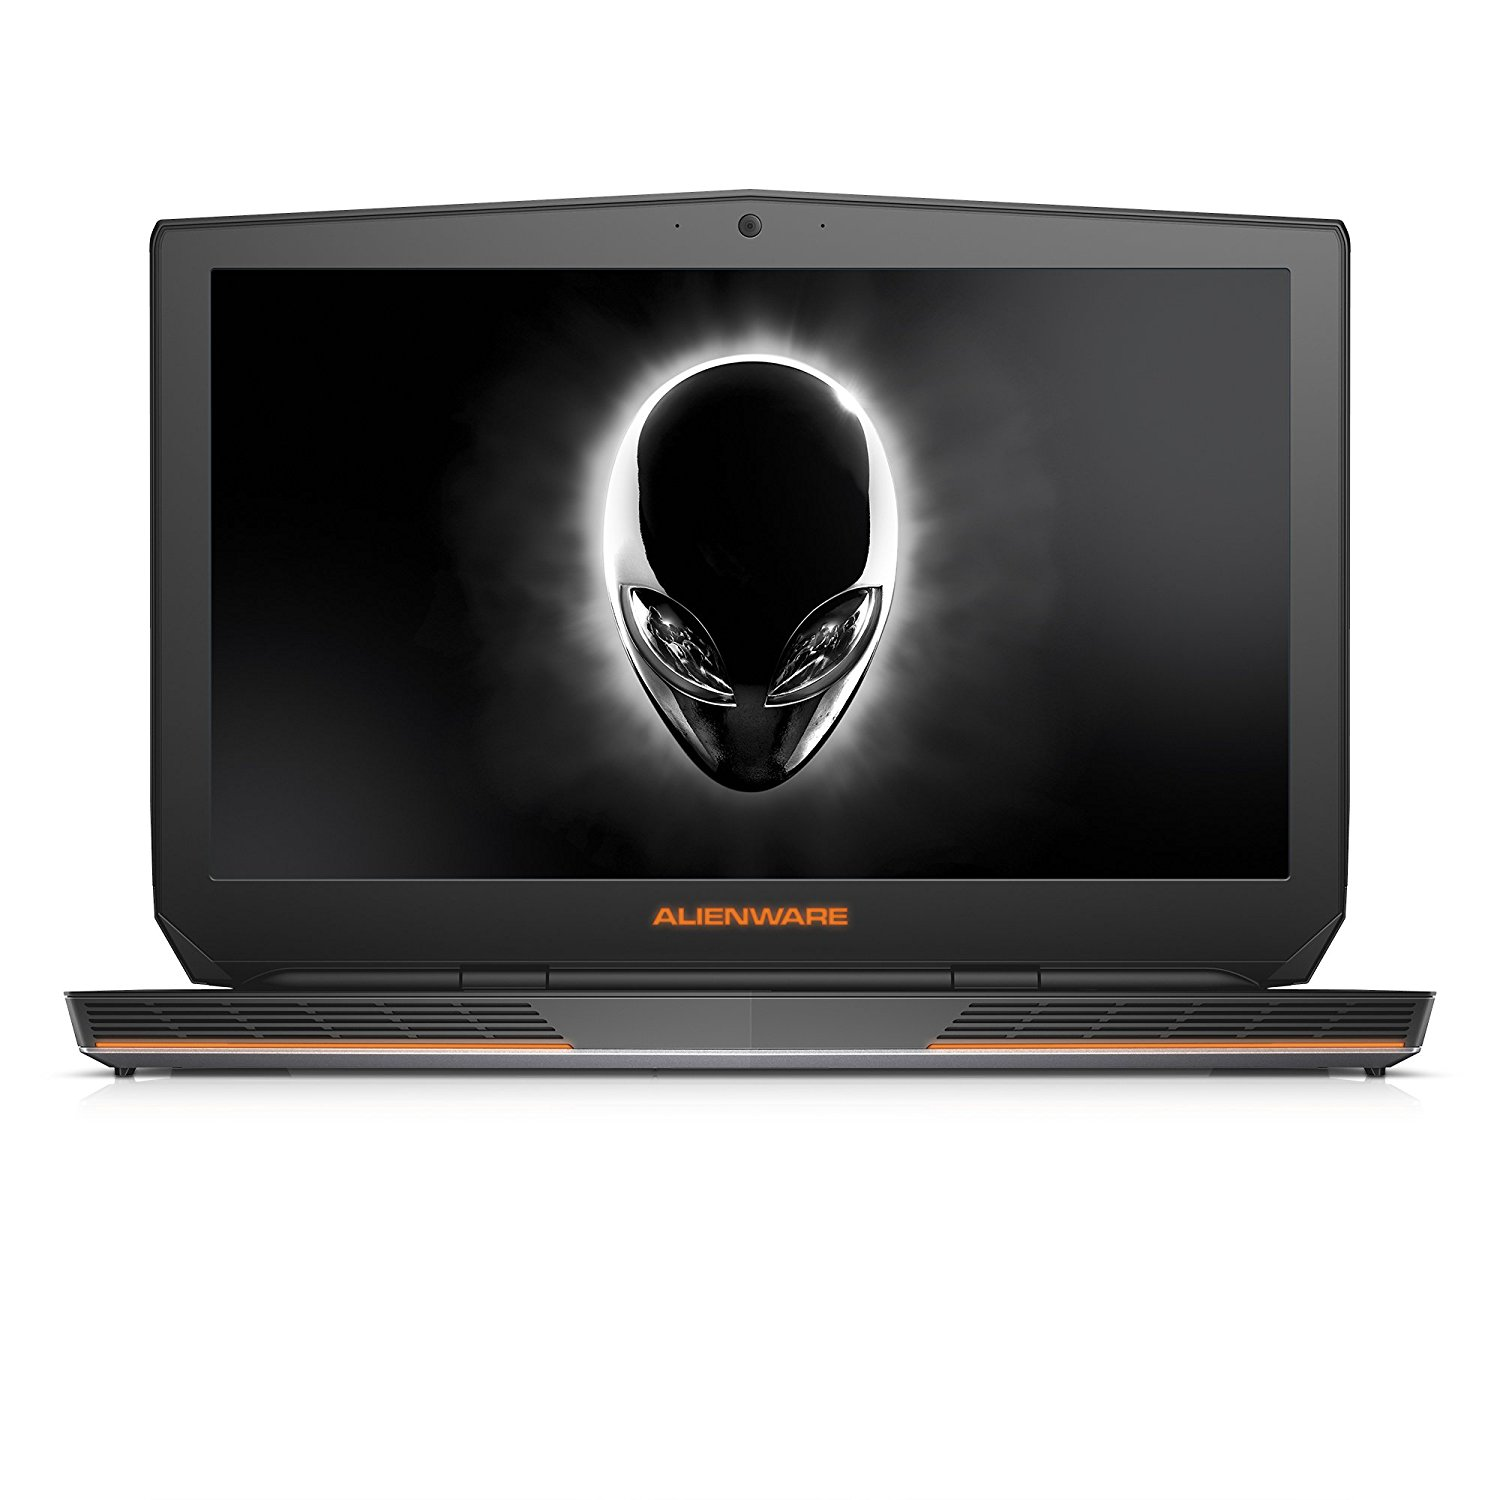 Alienware 15 4K UHD Touchscreen Gaming Laptop Intel Skylake Core i7-6700HQ 16GB DDR4 Memory 256GB SS